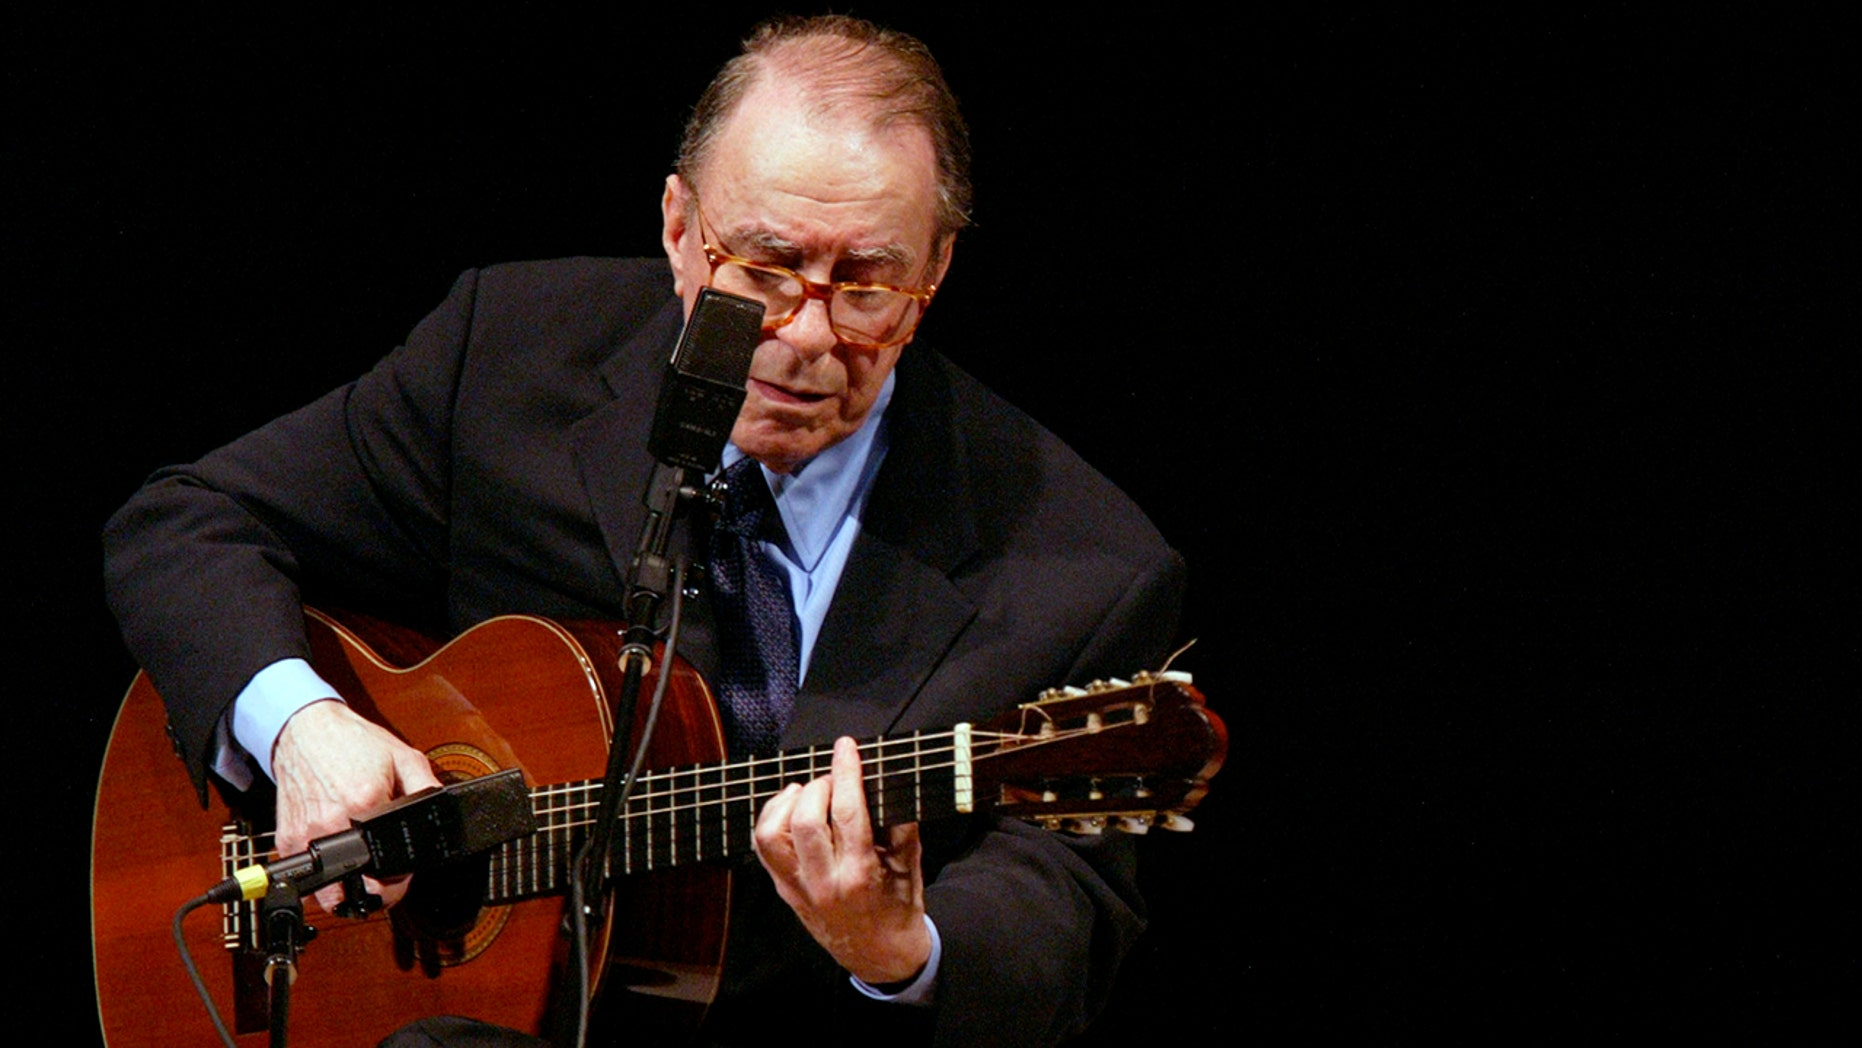 In this June 18, 2004 file photo, Brazilian composer Joao Gilberto performs at Carnegie Hall, in New York. (AP Photo/Mary Altaffer, File)